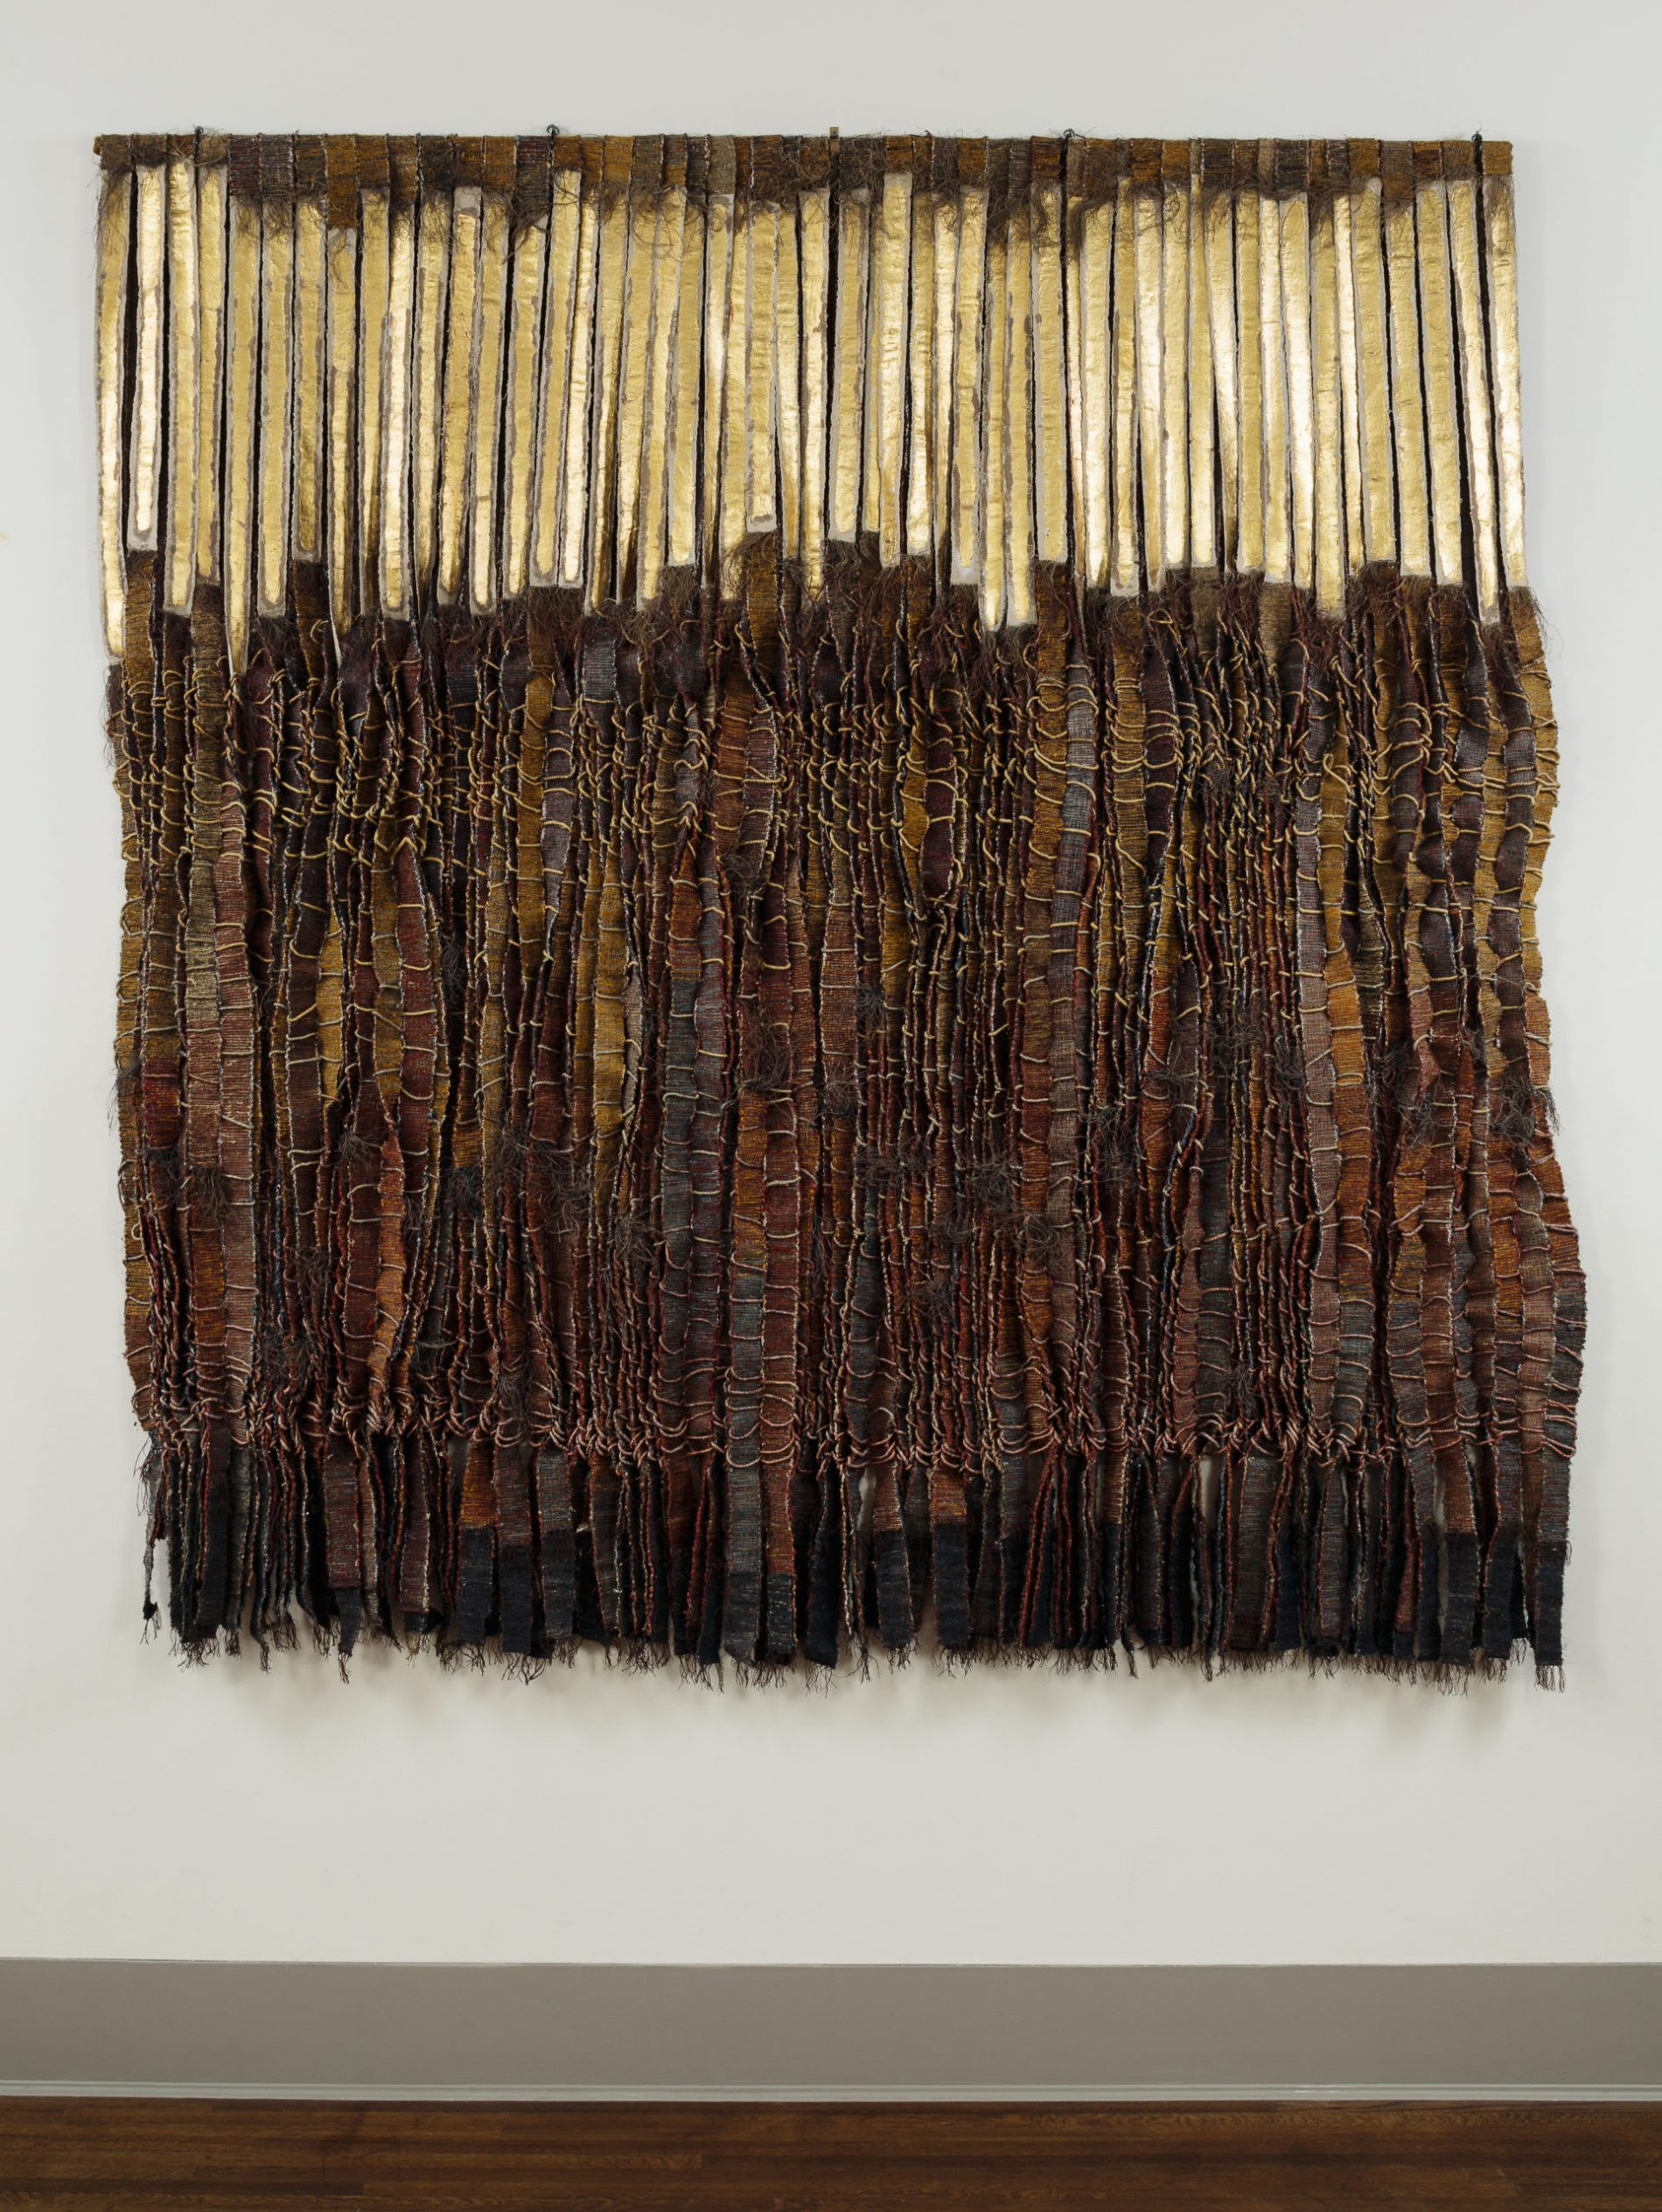 Olga De Amaral (Colombian, born 1932), Riscos y oro 2 (Crags and gold 2), 1985, horsehair, fiber, paint, gold leaf, 90 × 86 in. (228.6 × 218.4 cm). Purchased with funds from the Libbey Endowment, Gift of Edward Drummond Libbey, PC2020.03.1